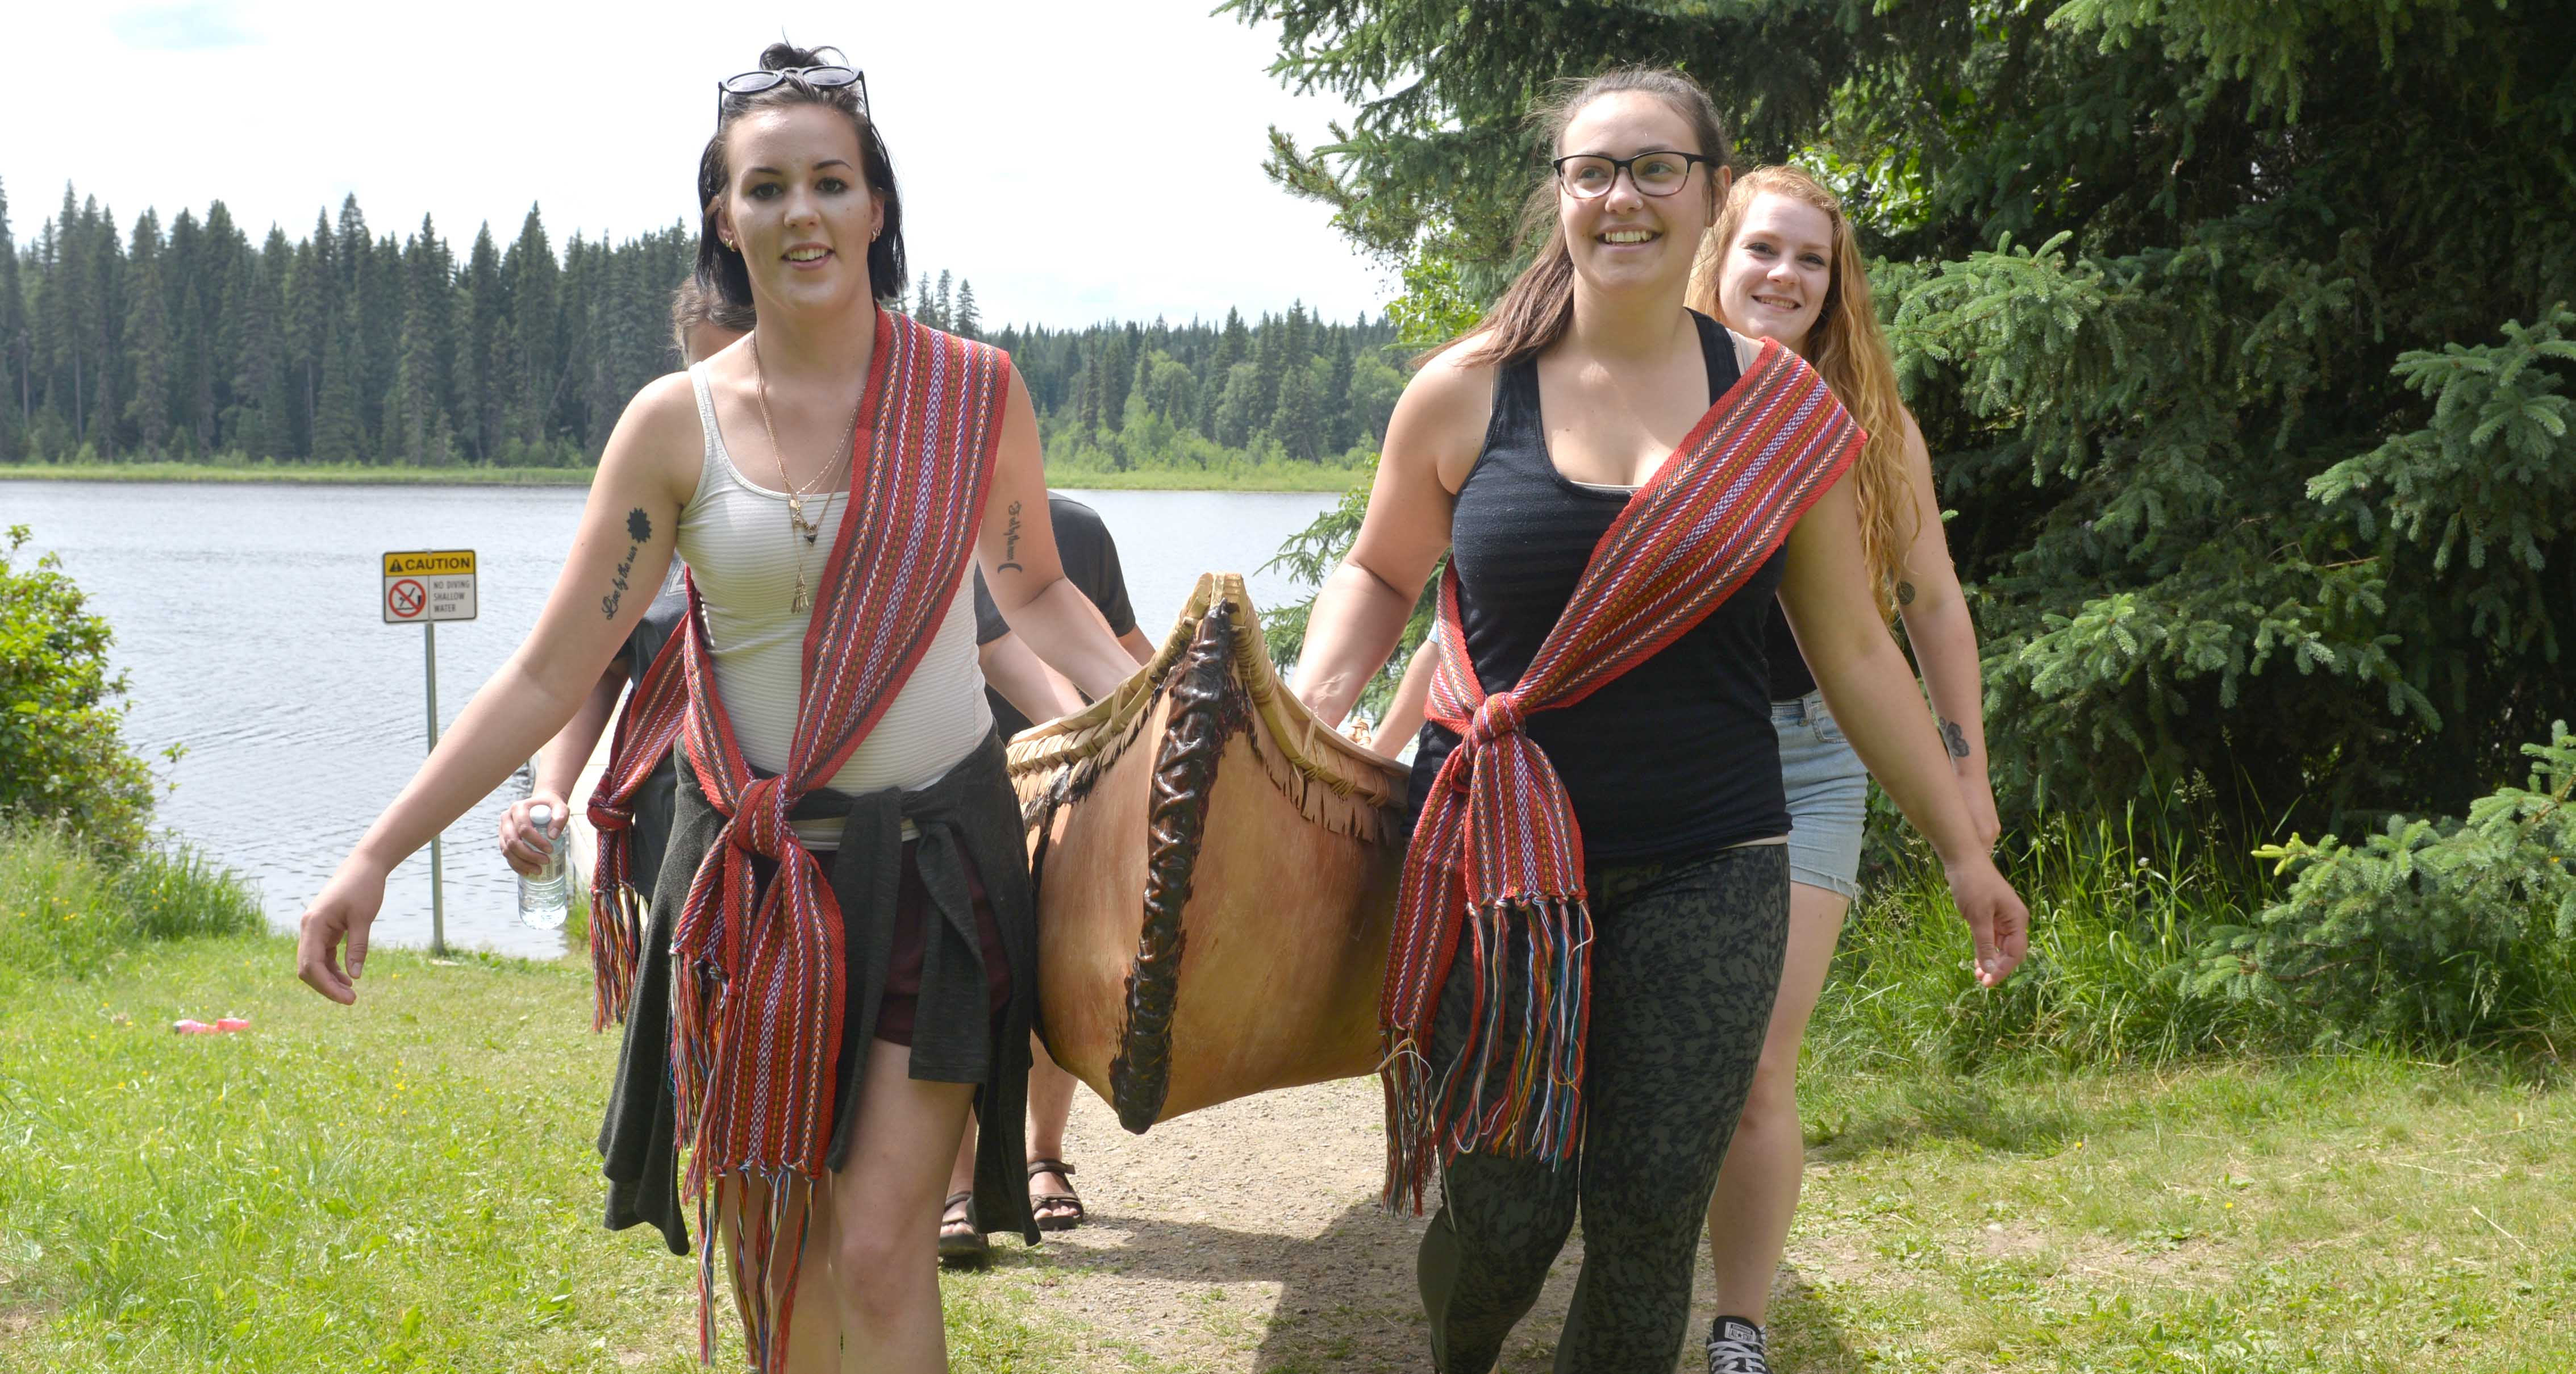 Students carry the canoe up from the water